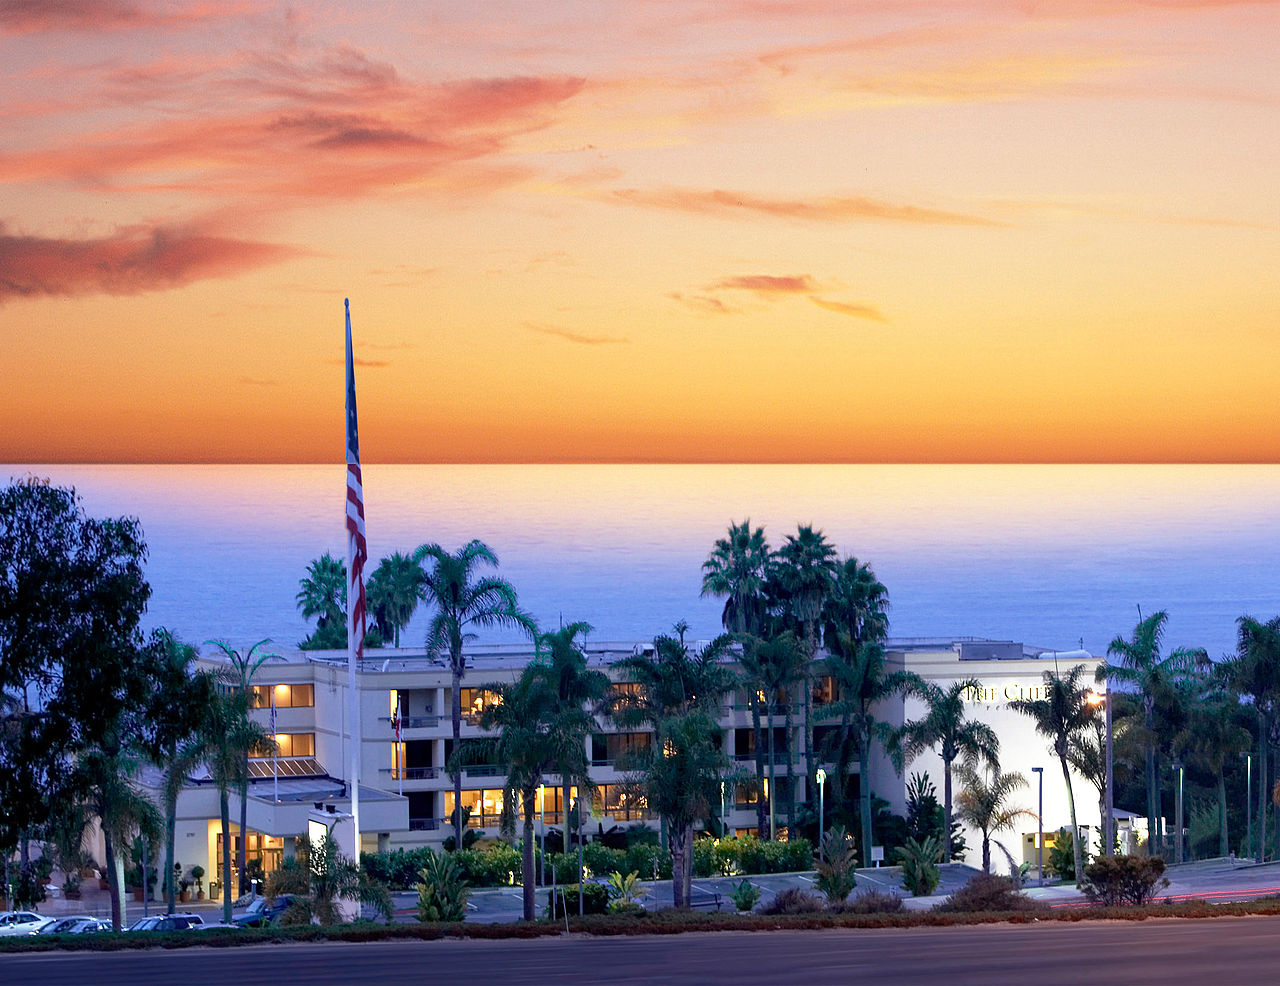 Nestled halfway between San Francisco and Los Angeles, The Cliffs Resort is perched atop bluffs overlooking some of the world's most pristine beach, Credit: Wikimedia Commons